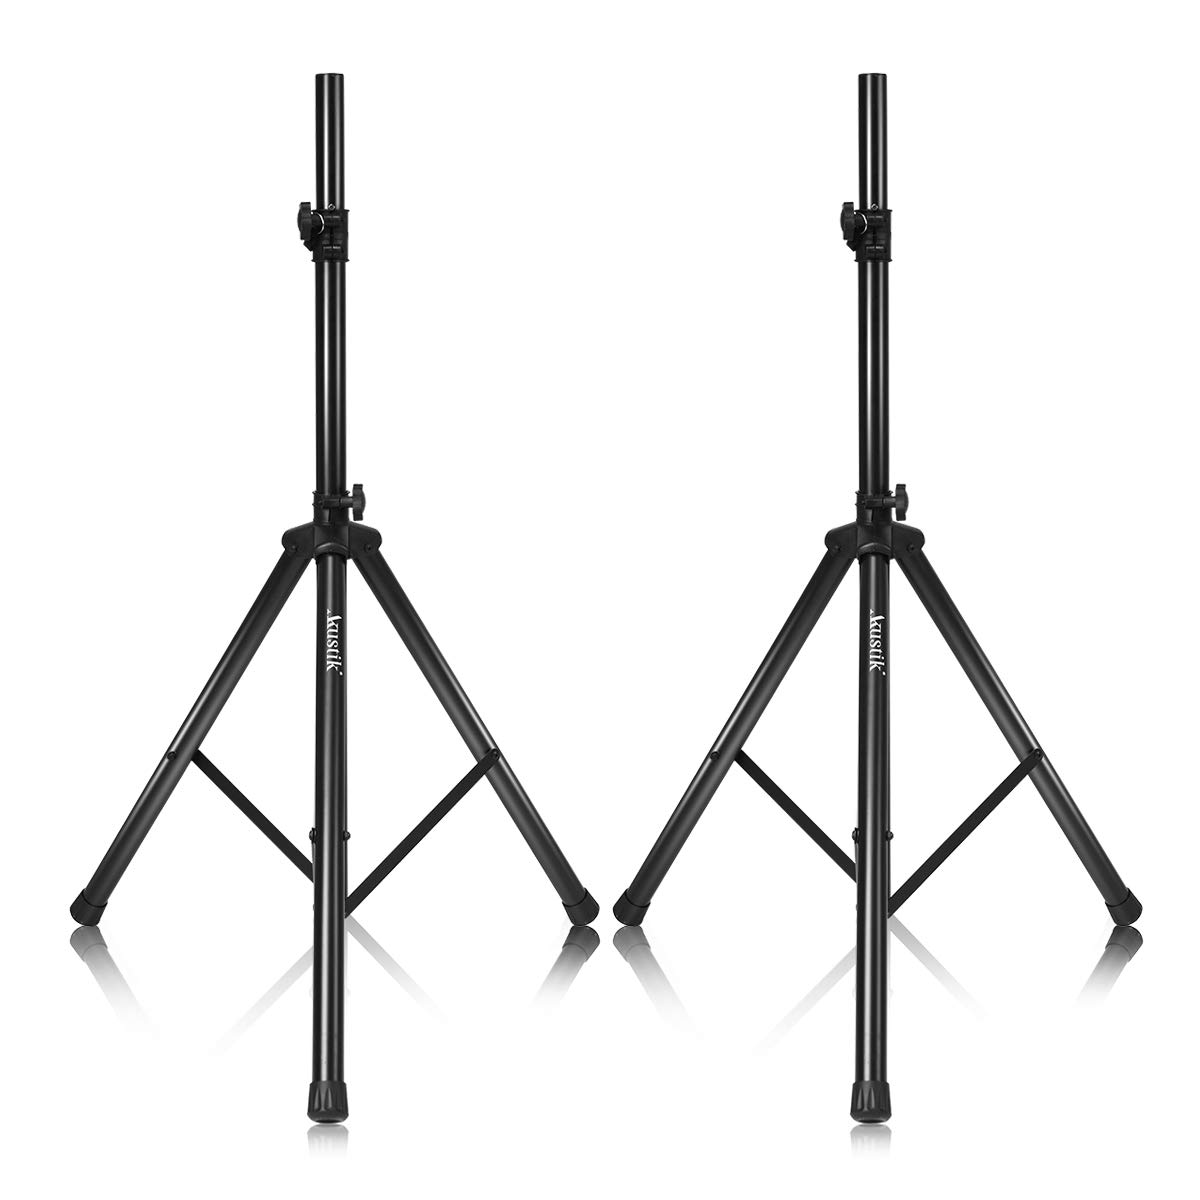 AKUSTIK Speaker Stand with Adjustable Height 37.5''-75'', 150lbs Weight Capacity, Safety Locking Knob & PIN, 35MM Compatible Insert, Universal DJ PA Tripod Stand (37.5''-75'' (x Pair))